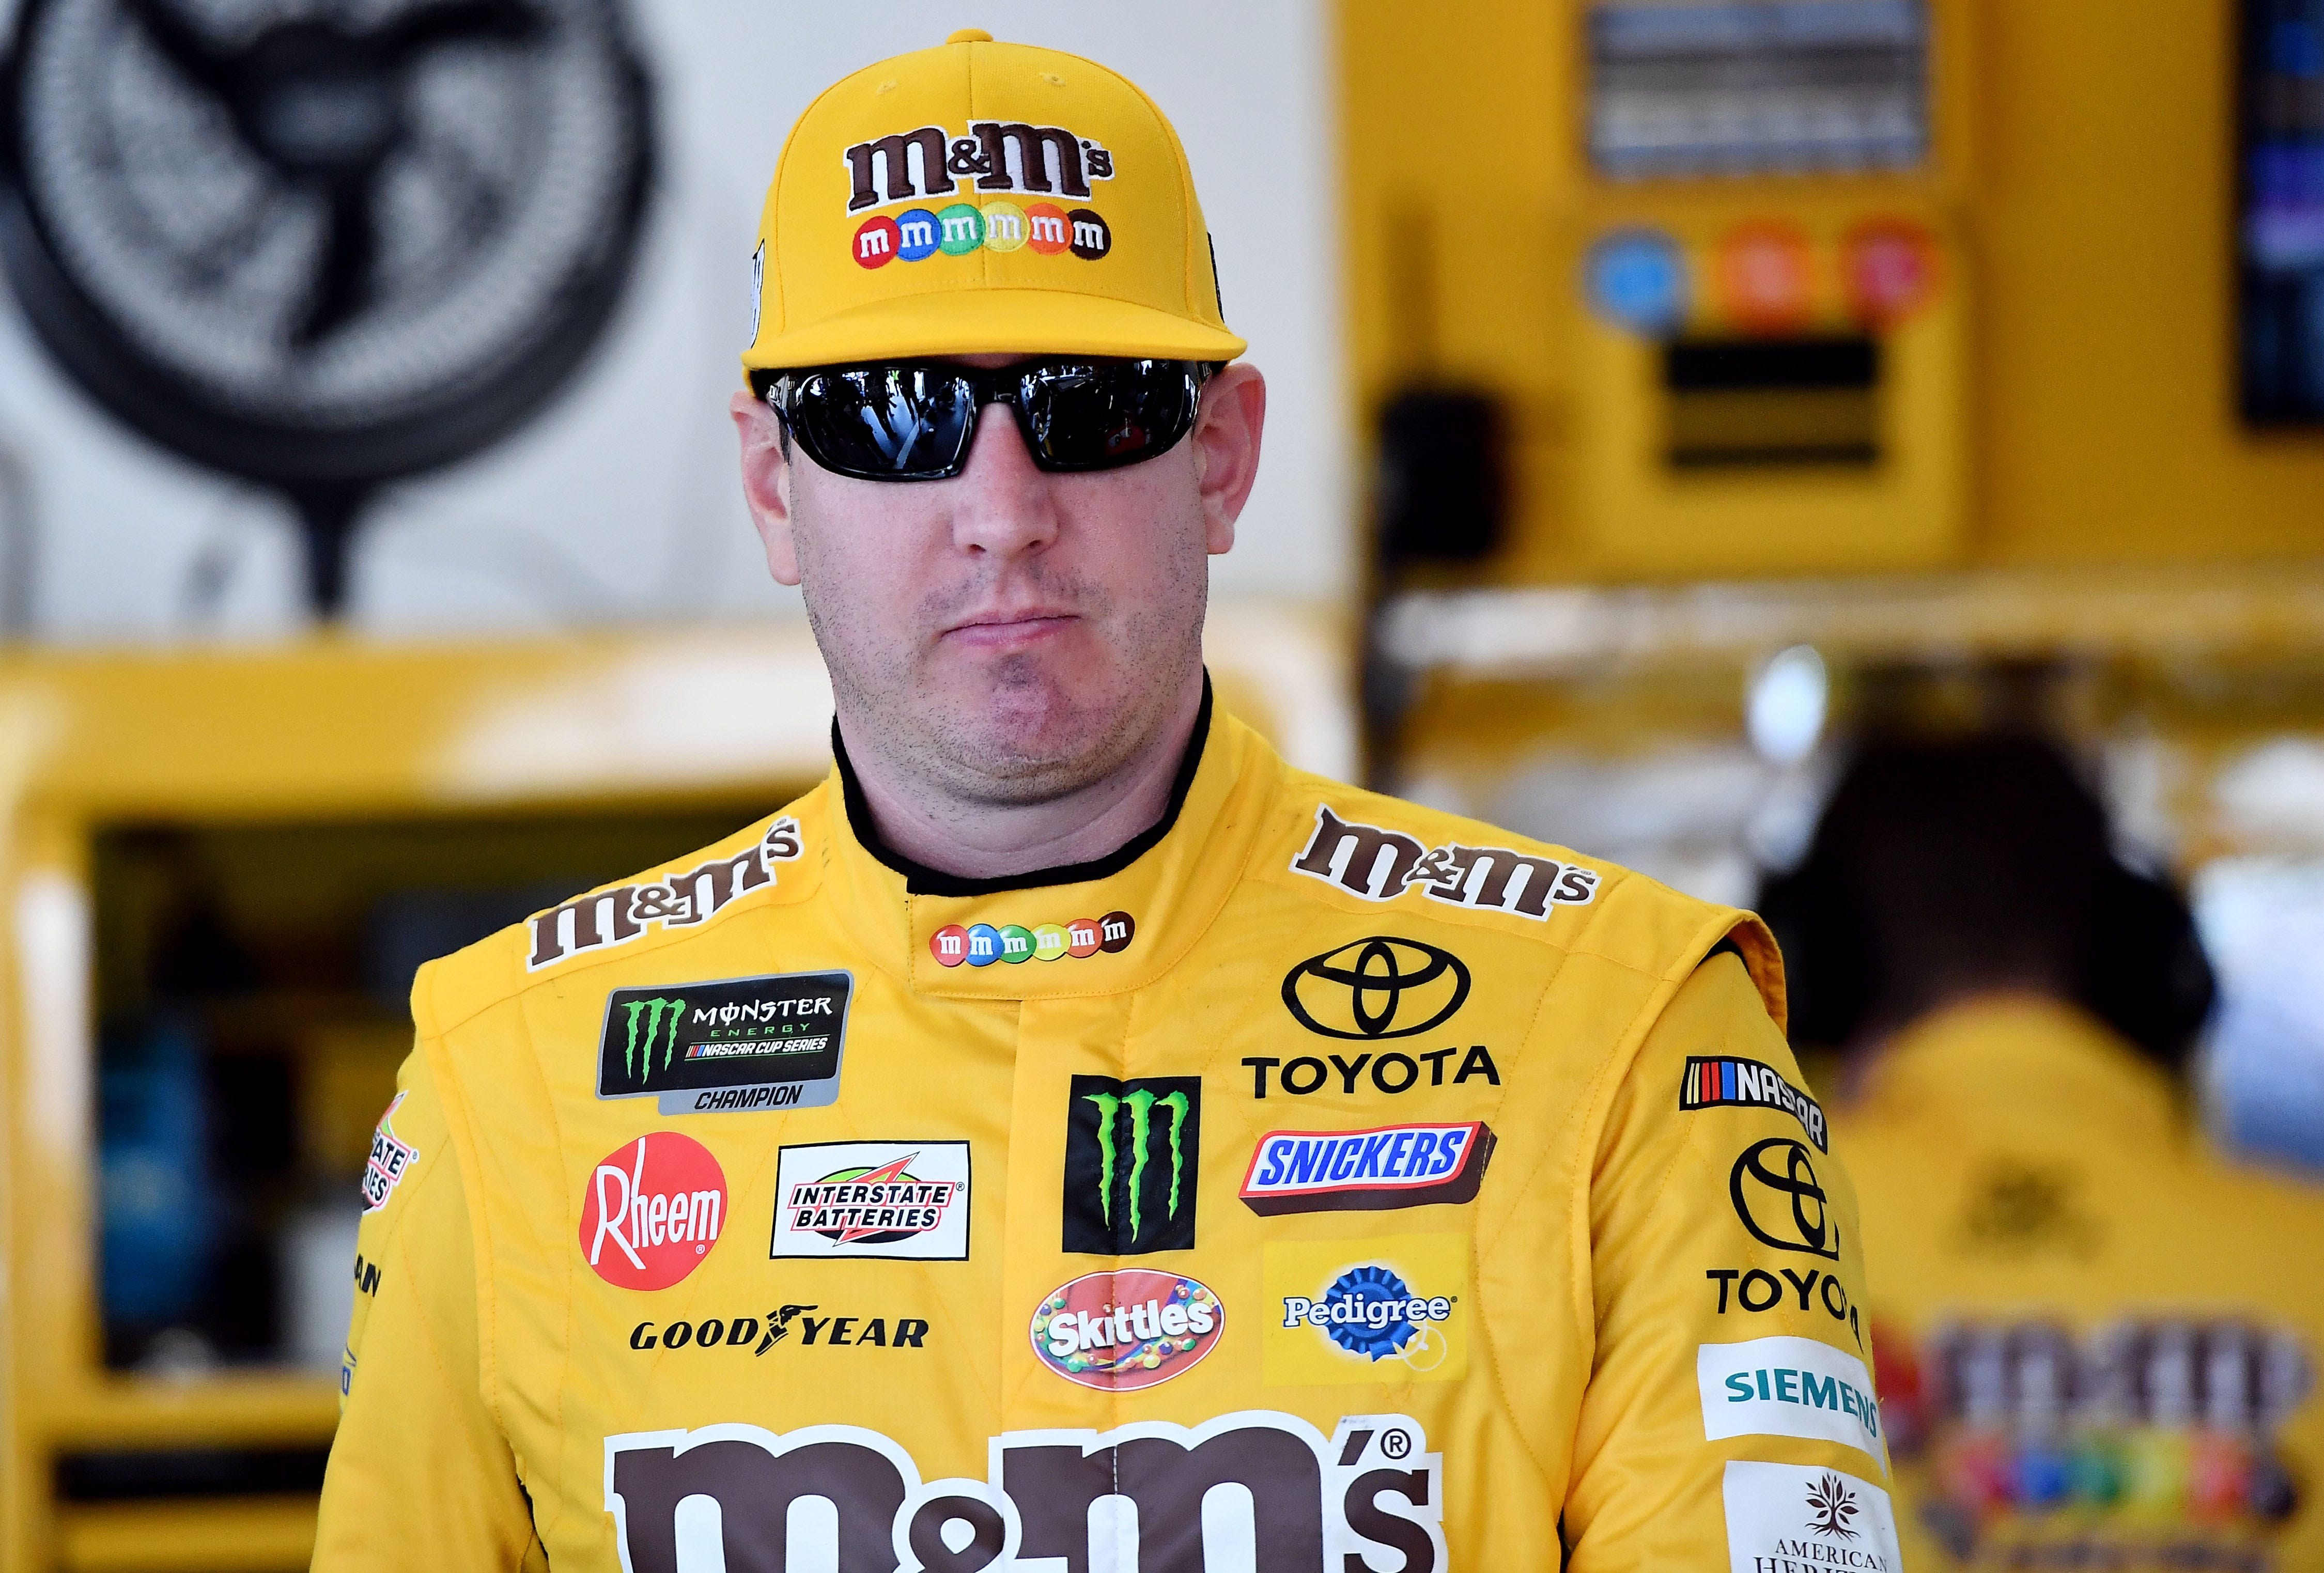 Kyle Busch's bid for more NASCAR history comes up short at Las Vegas